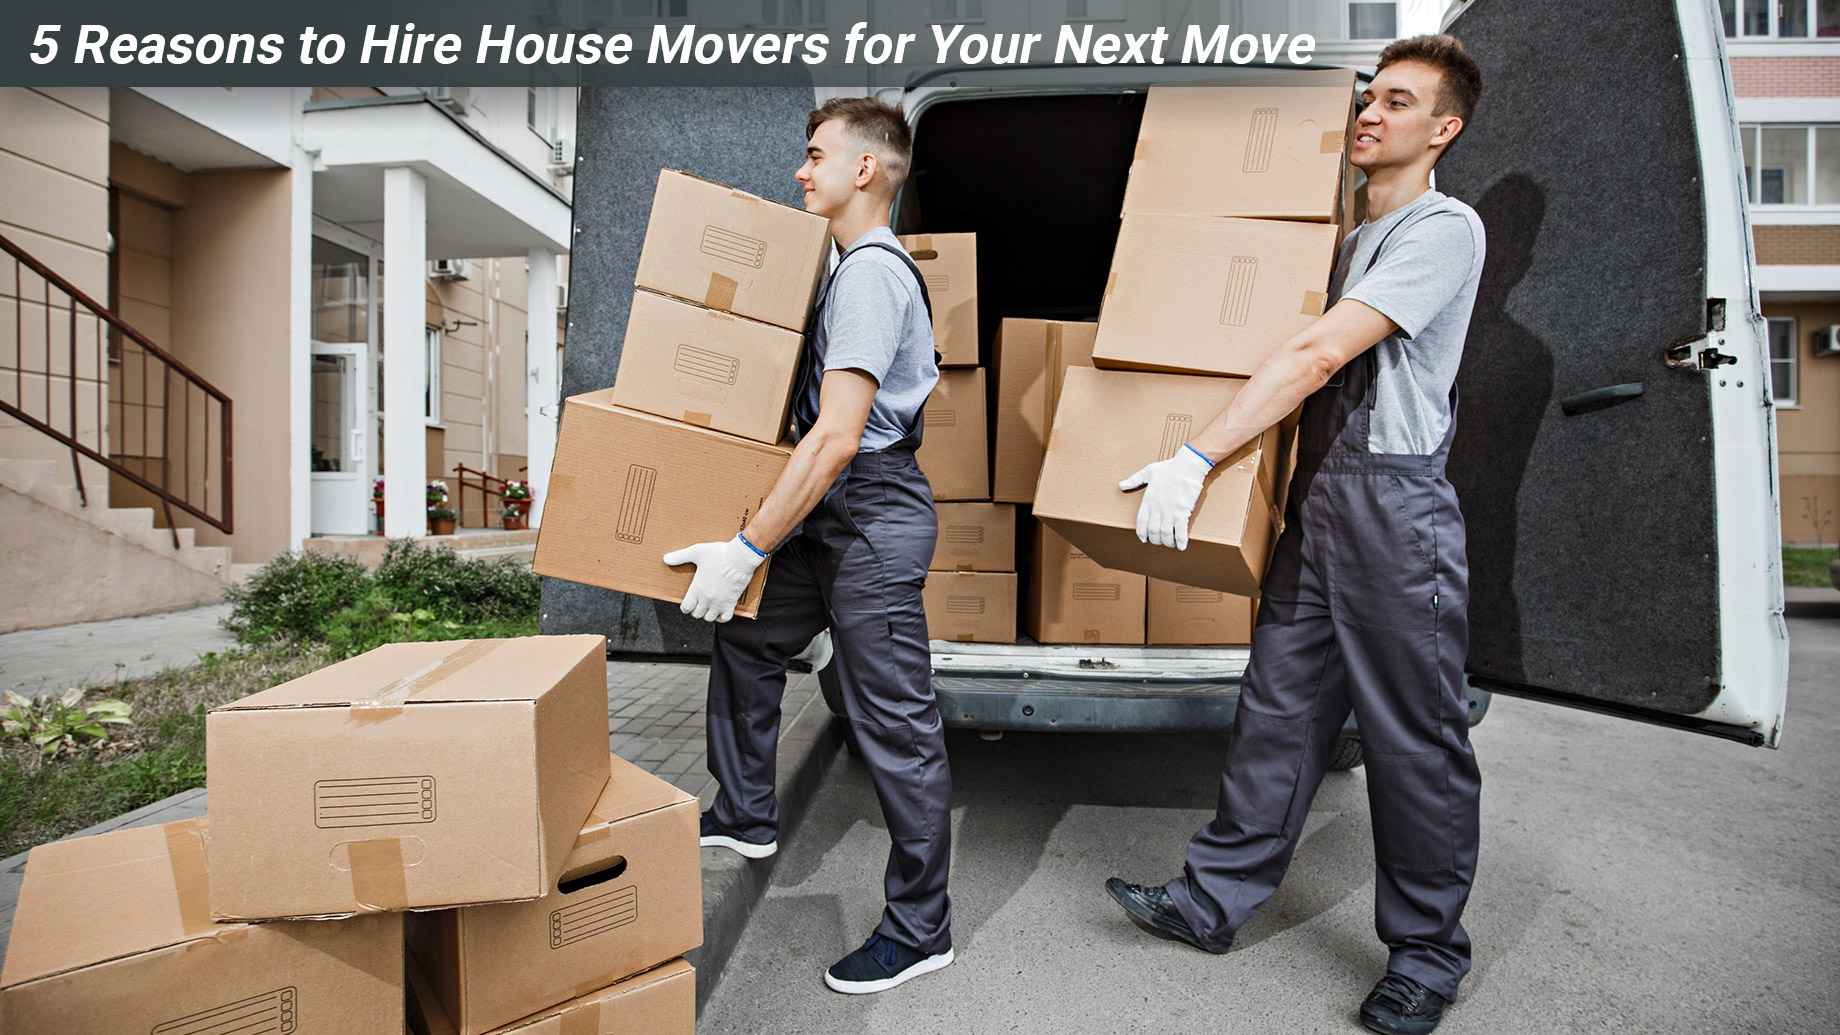 5 Reasons to Hire House Movers for Your Next Move